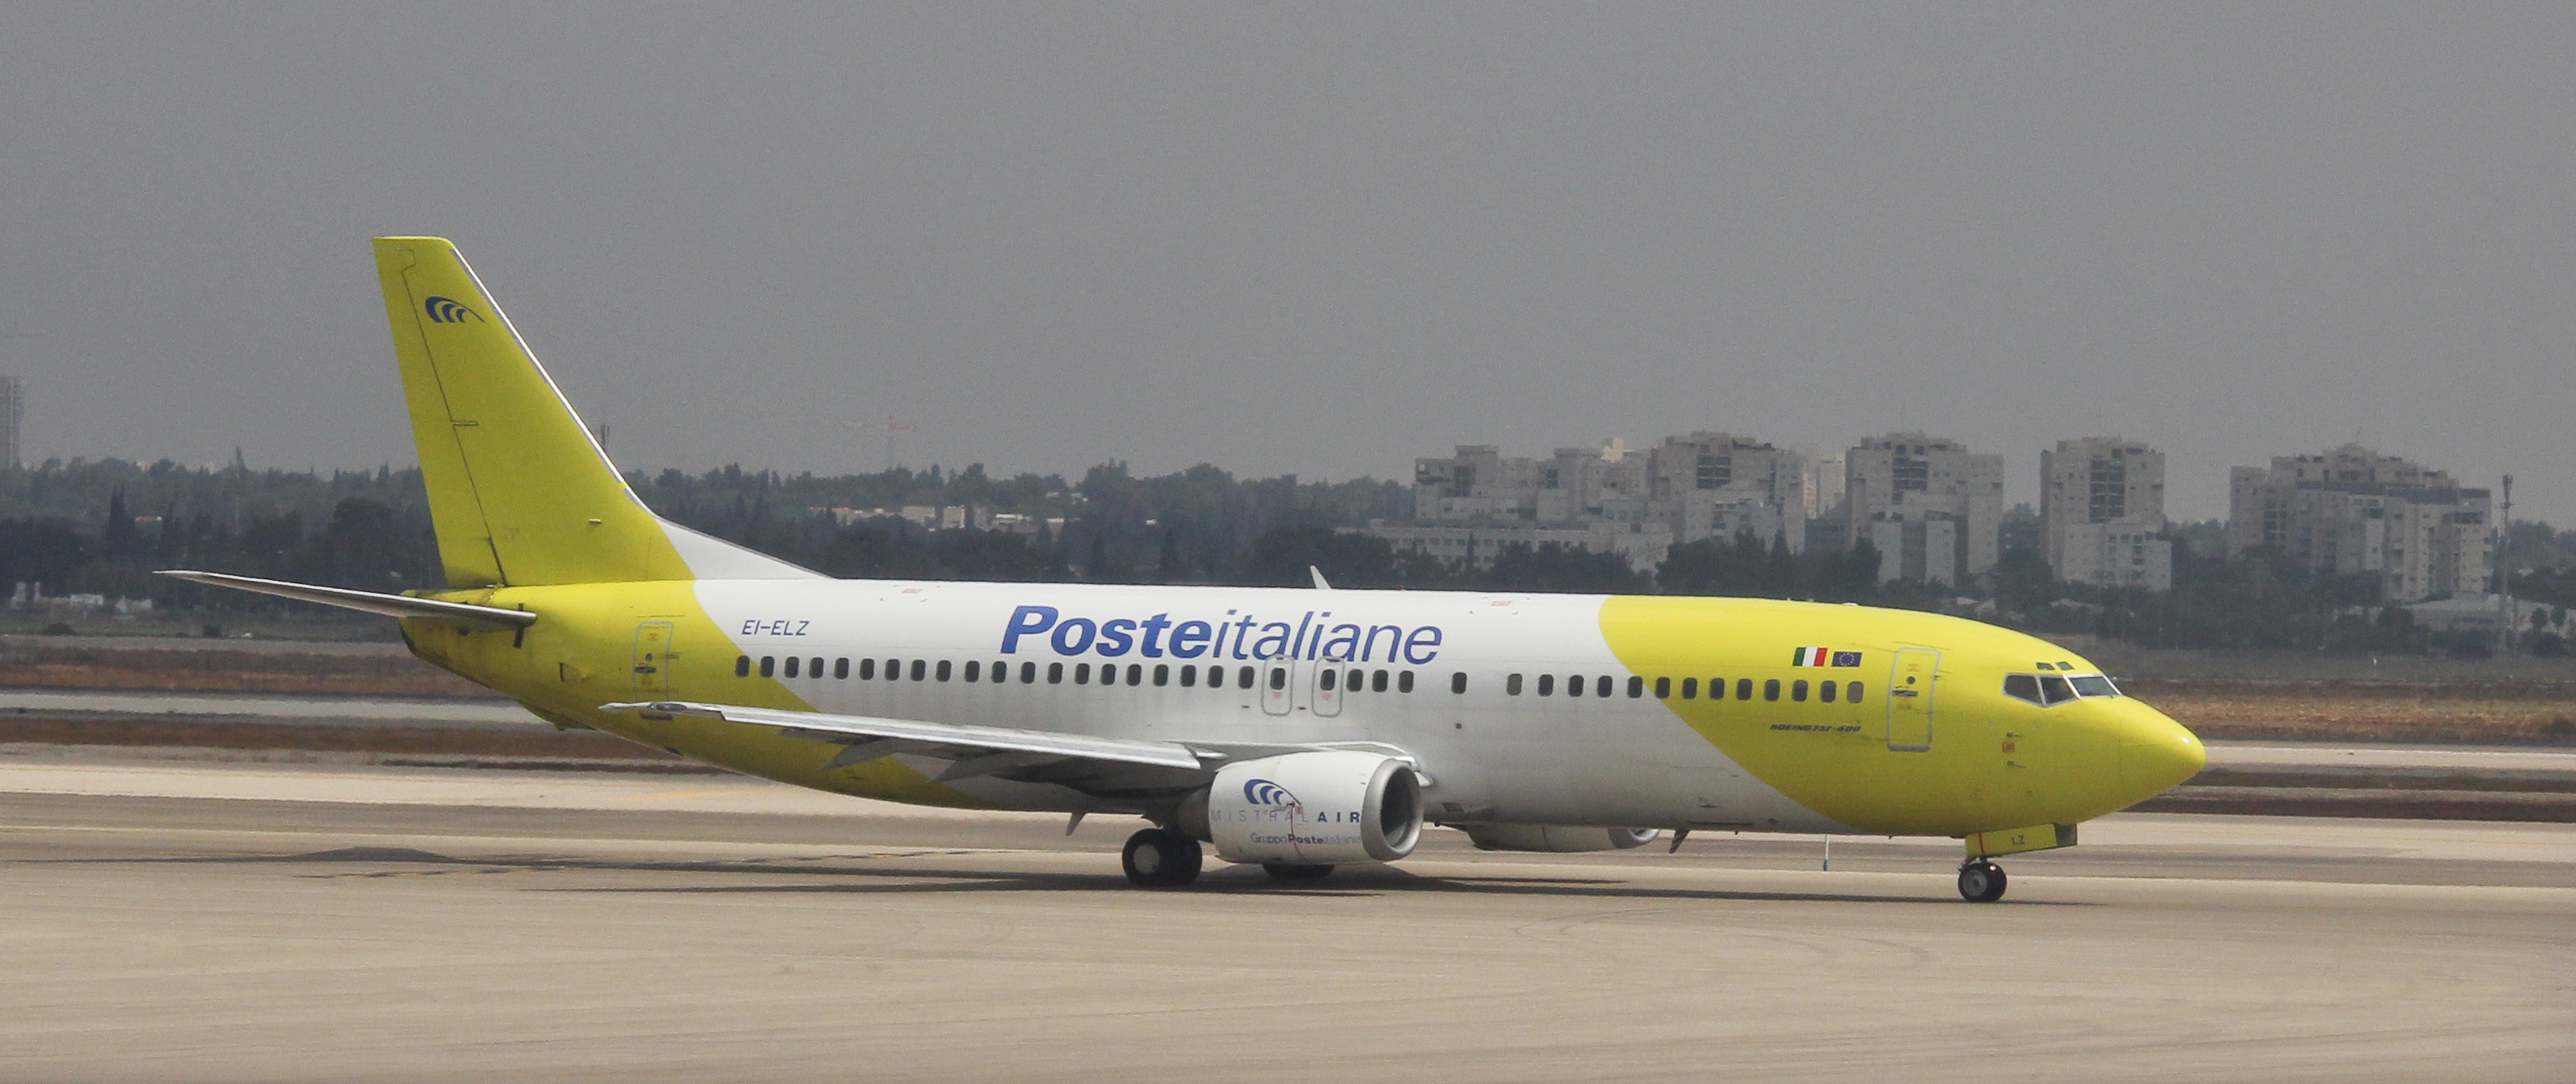 File poste italiane mistral air boeing 737 4q8 tel for Poste italiane